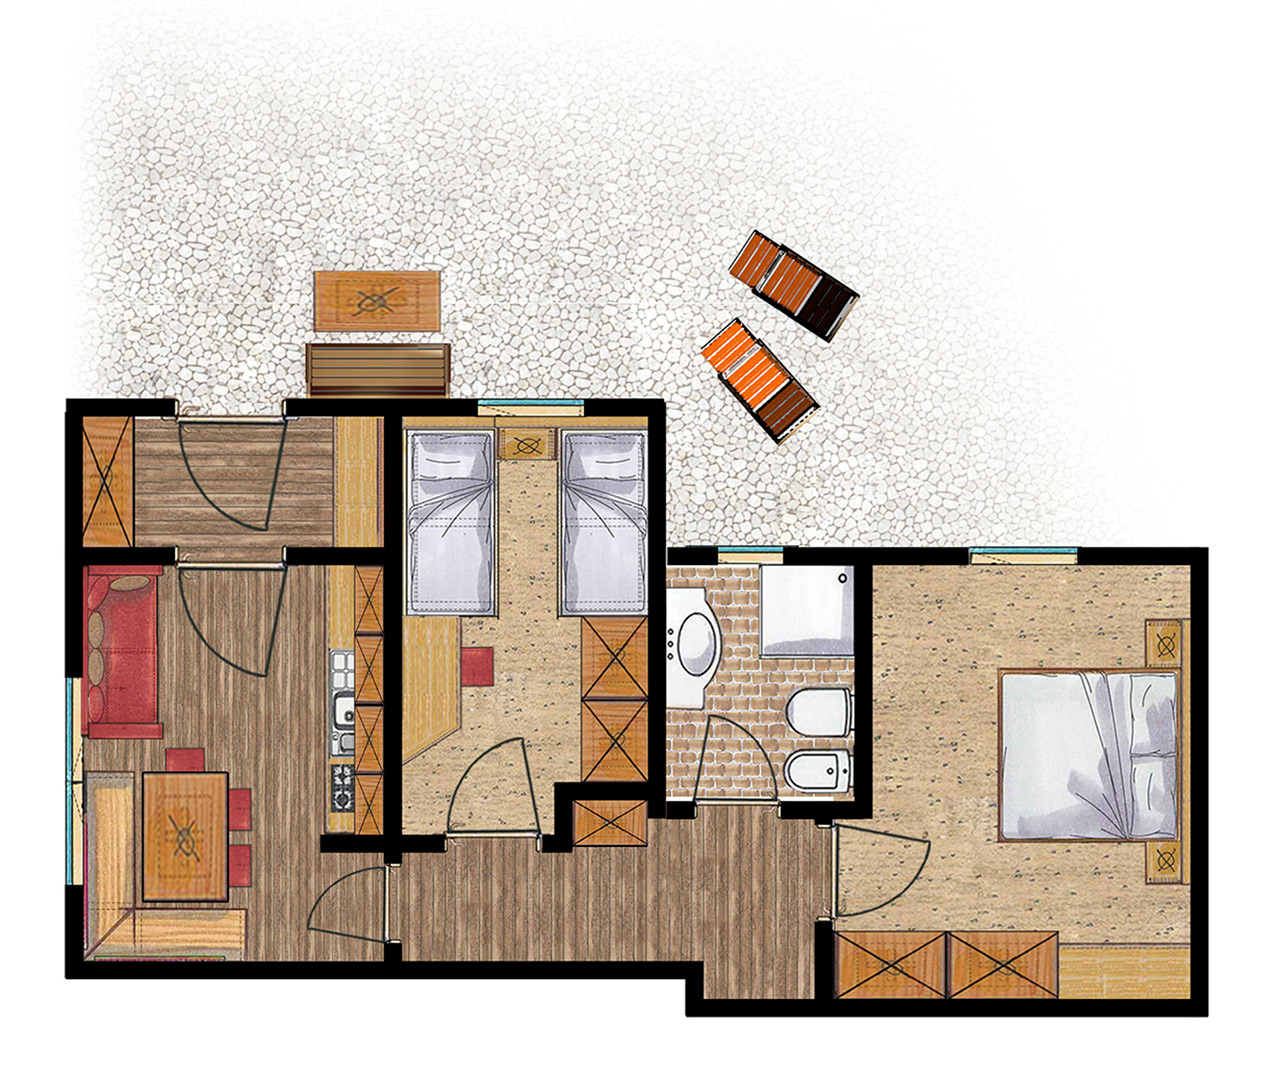 Room Plan Apartment for 2-5 guests